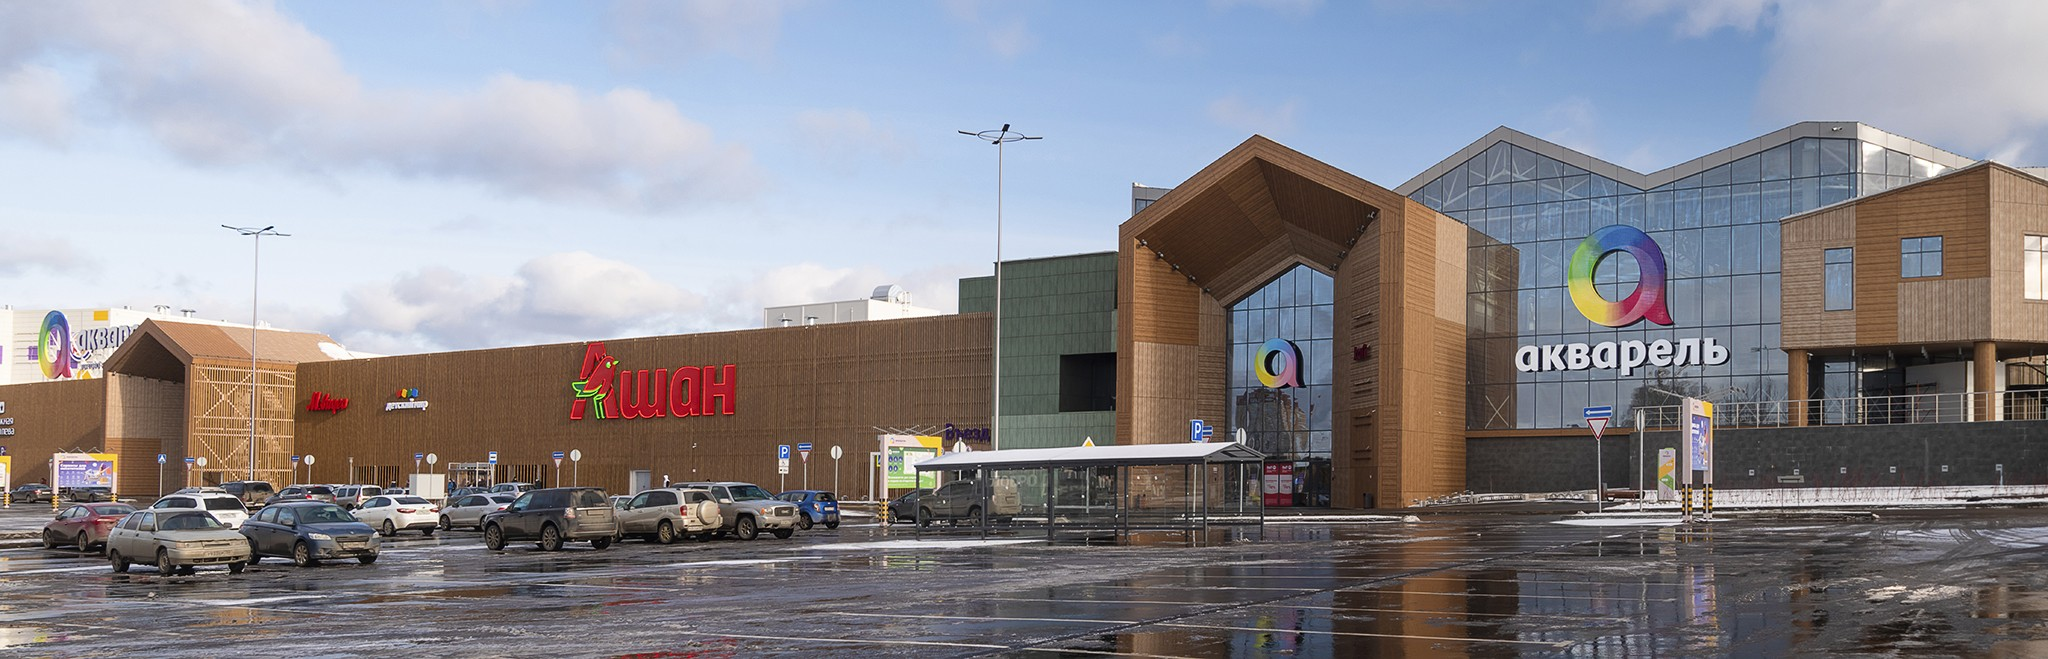 professional photos of a shopping mall in Moscow